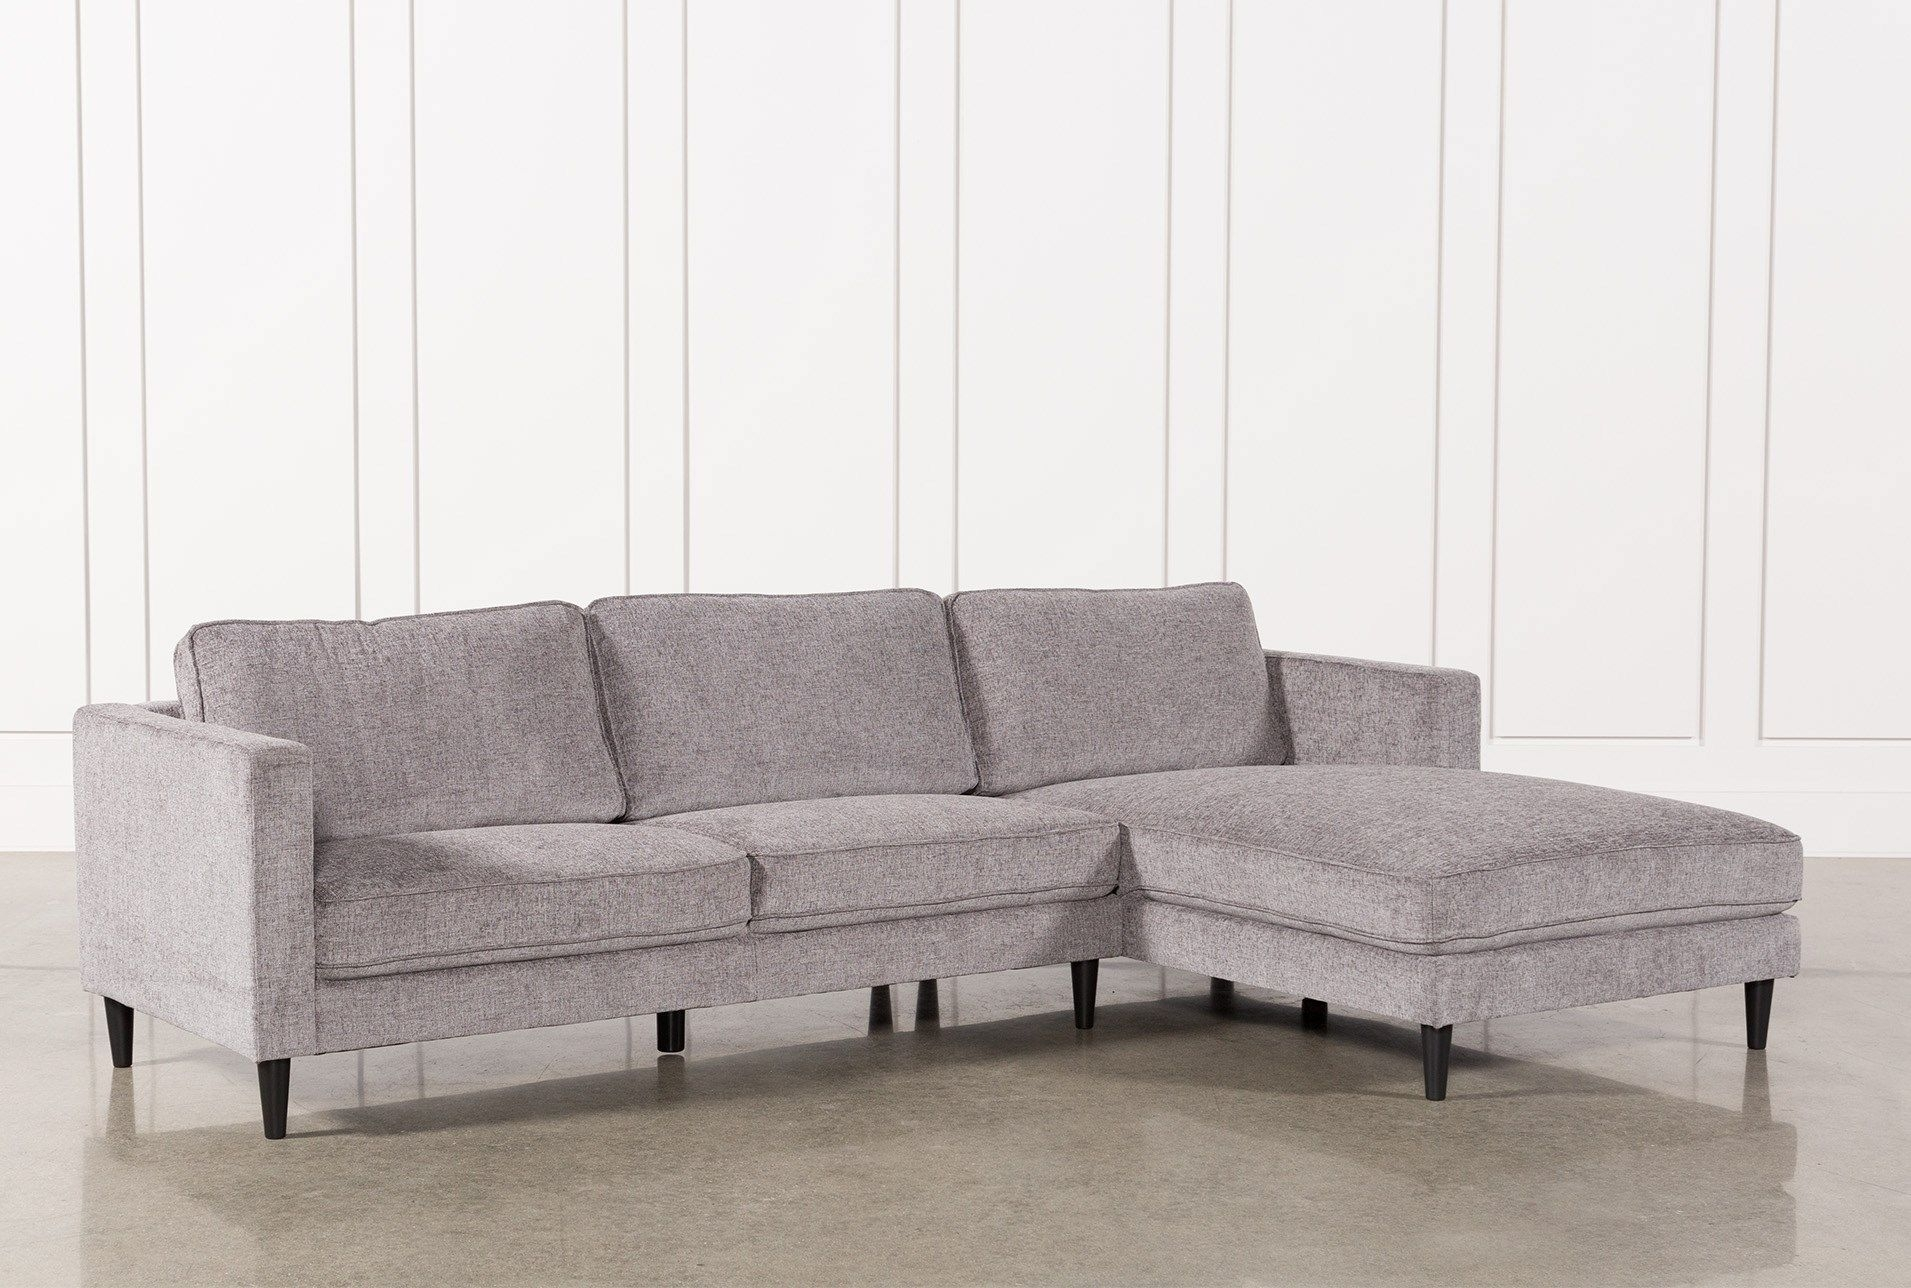 Cosmos Grey 2 Piece Sectional W/raf Chaise | Furniture | Pinterest regarding Aquarius Light Grey 2 Piece Sectionals With Laf Chaise (Image 14 of 30)